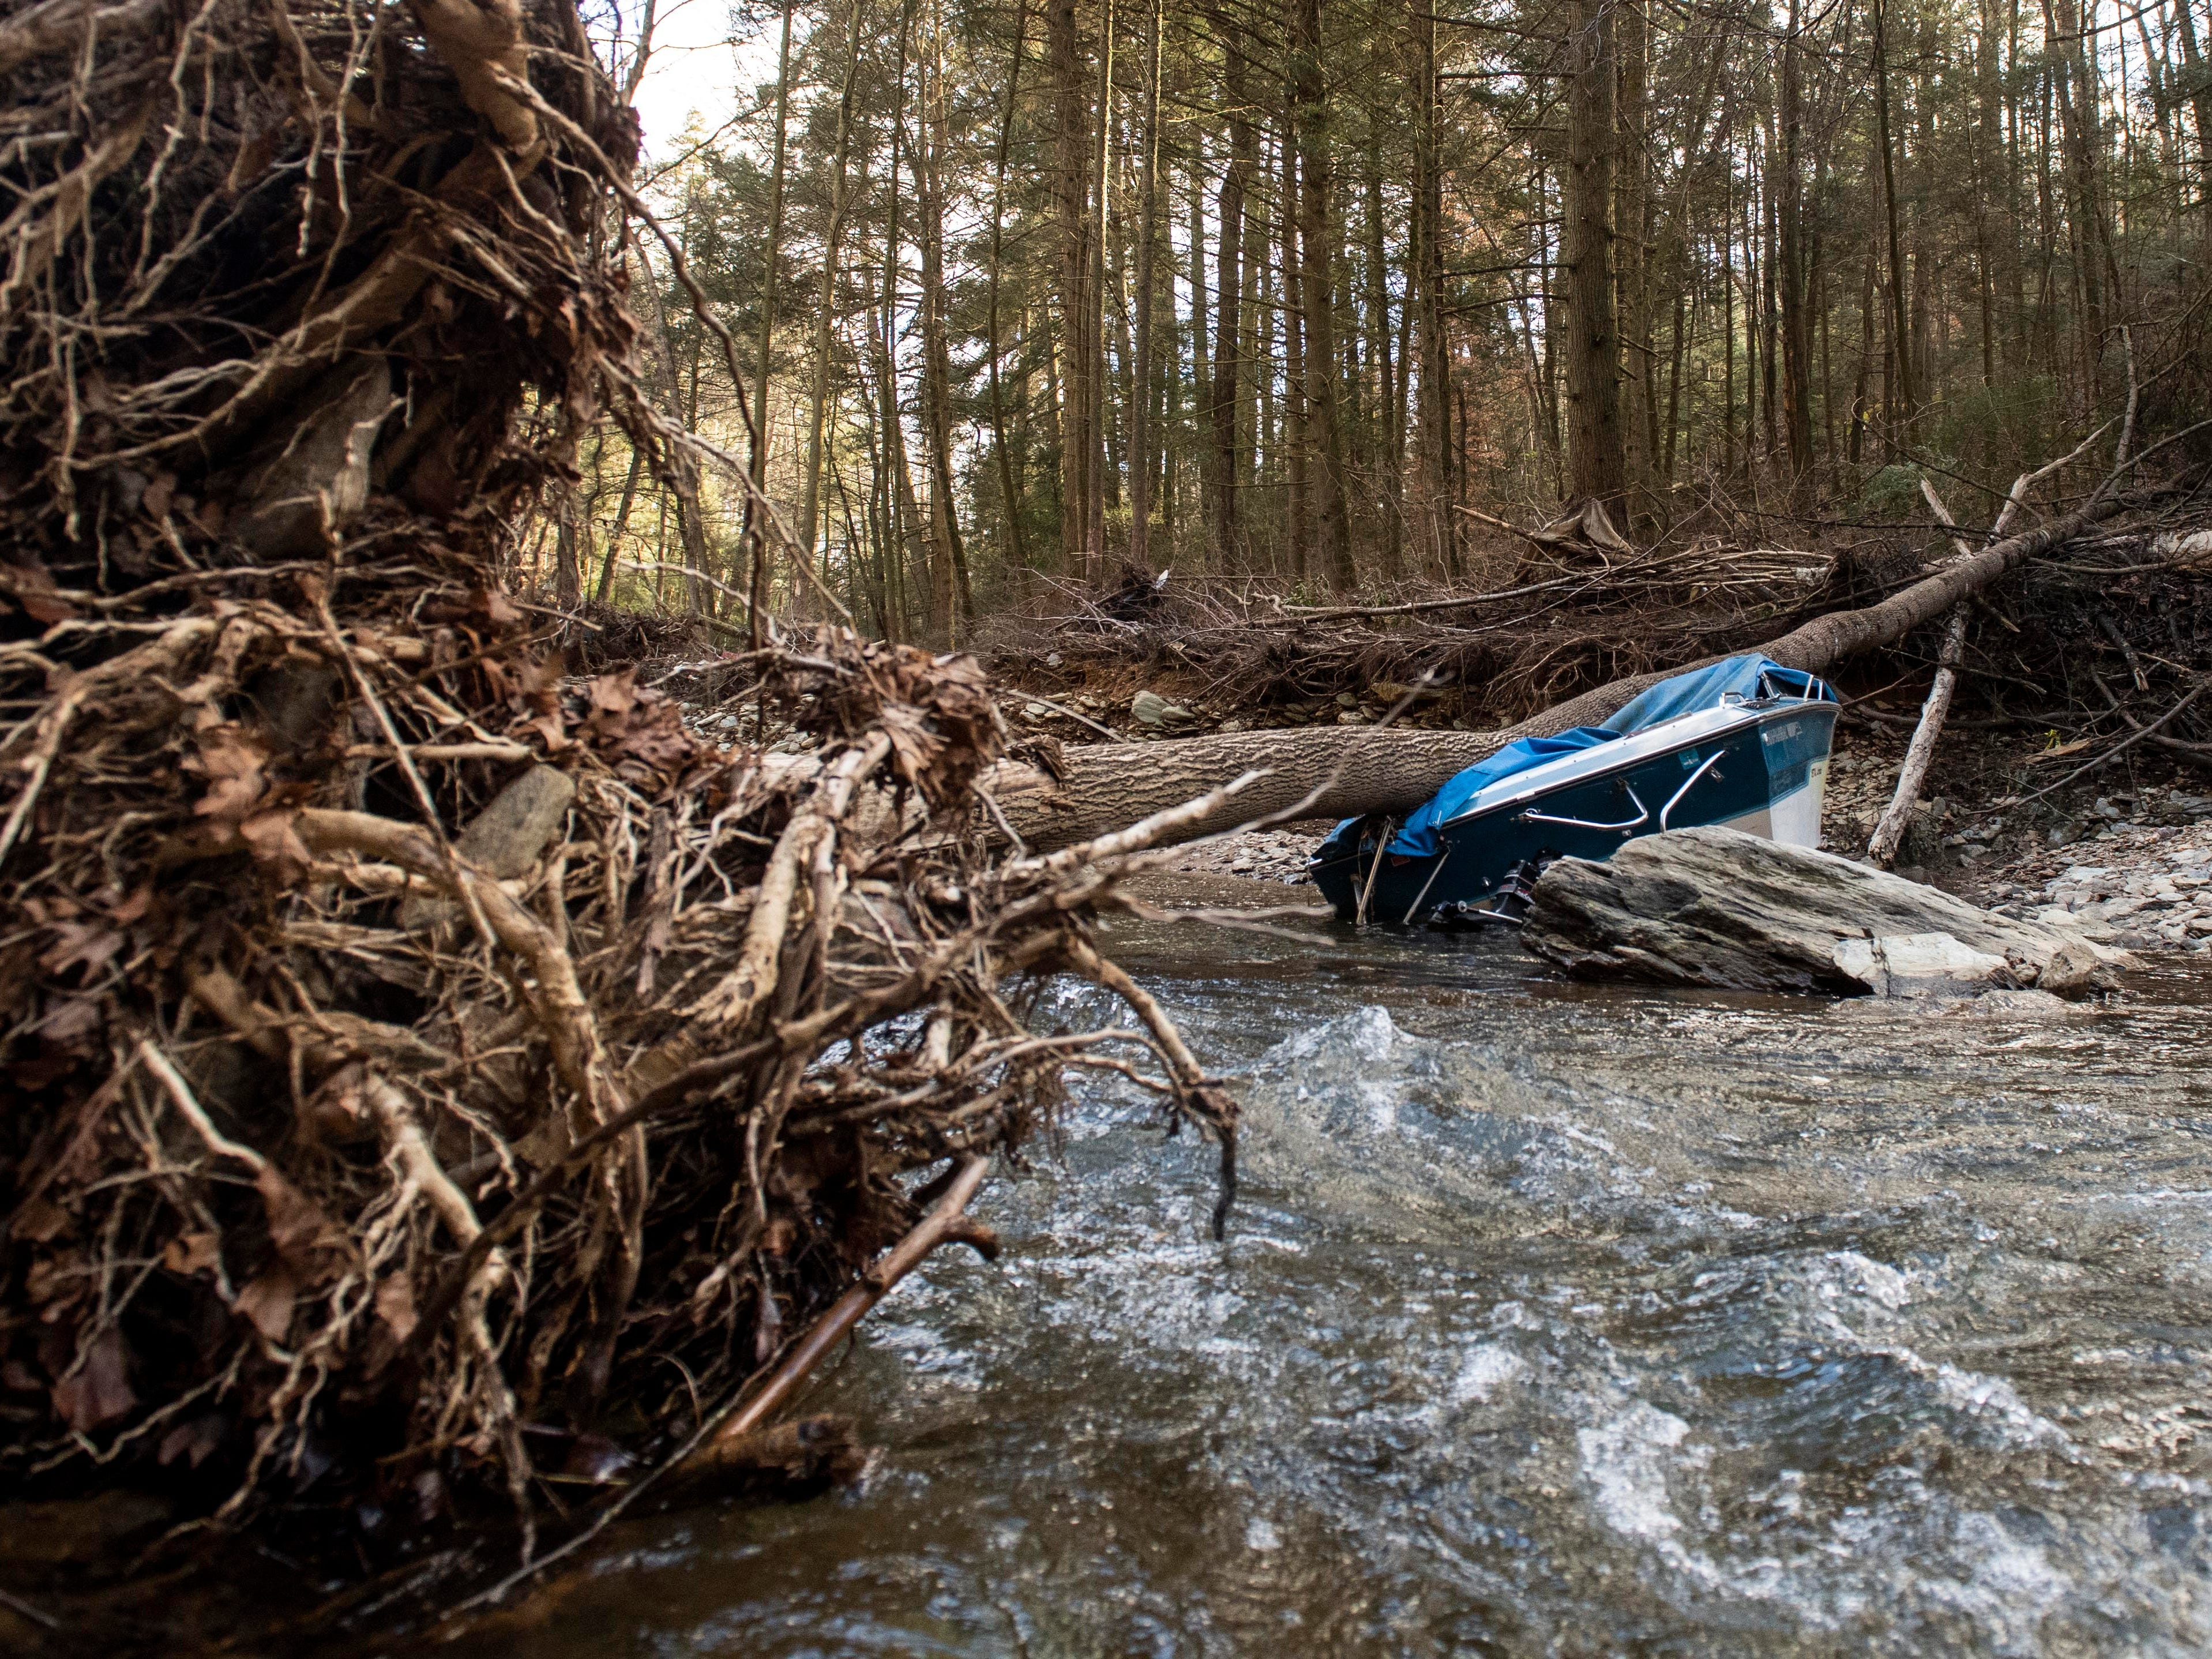 A boat, crushed by a downed tree, is one of a few large, heavy objects that the Lancaster County Conservancy is still trying to figure out how to get out of the creek, Thursday, Jan. 10, 2019. Flooding that ravaged many parts of York County in Aug. 2018 swept debris into Otter Creek, in Airville.